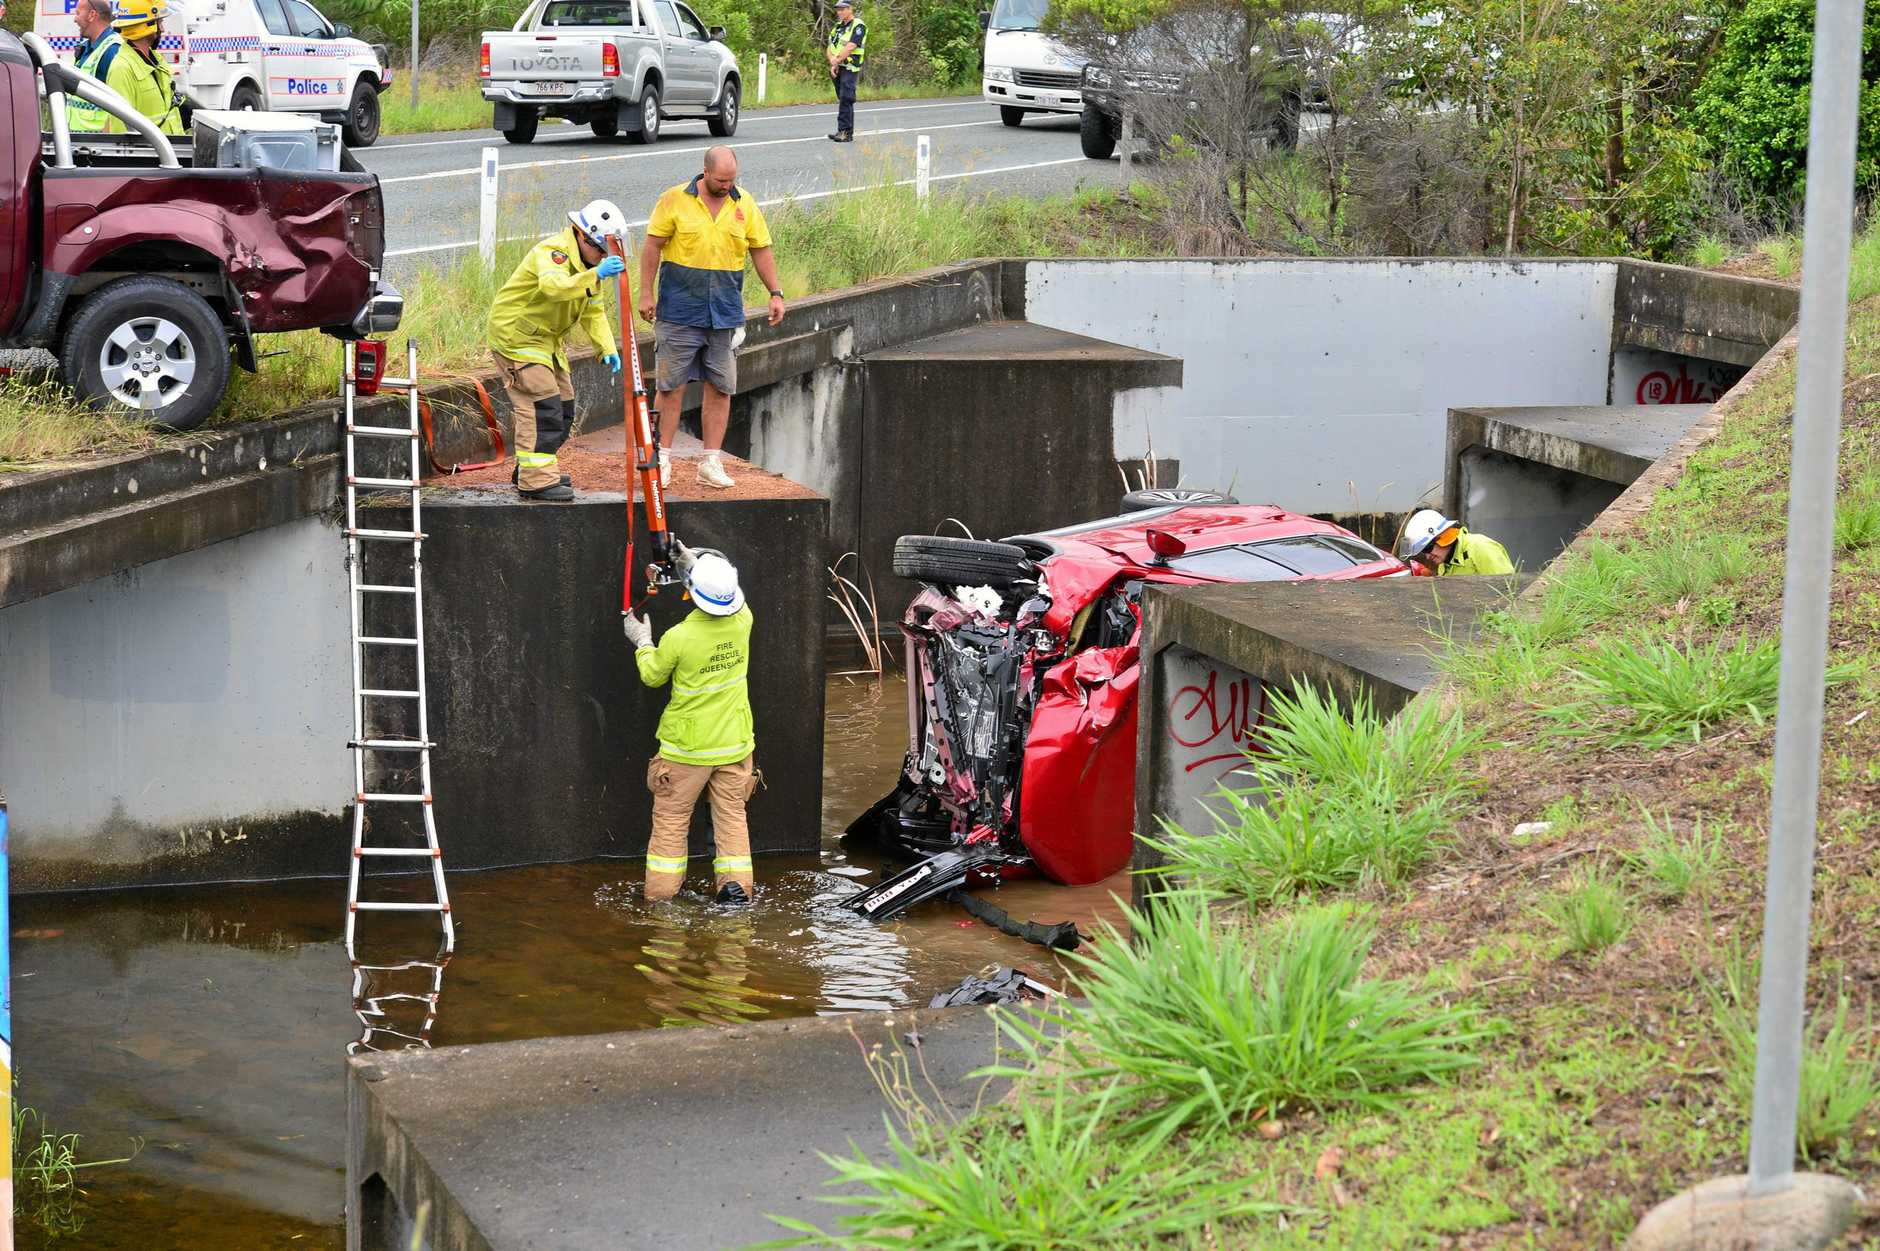 Five people were hospitalised after a crash on Yandina-Coolum Road near the Sunshine Motorway on Wednesday afternoon.